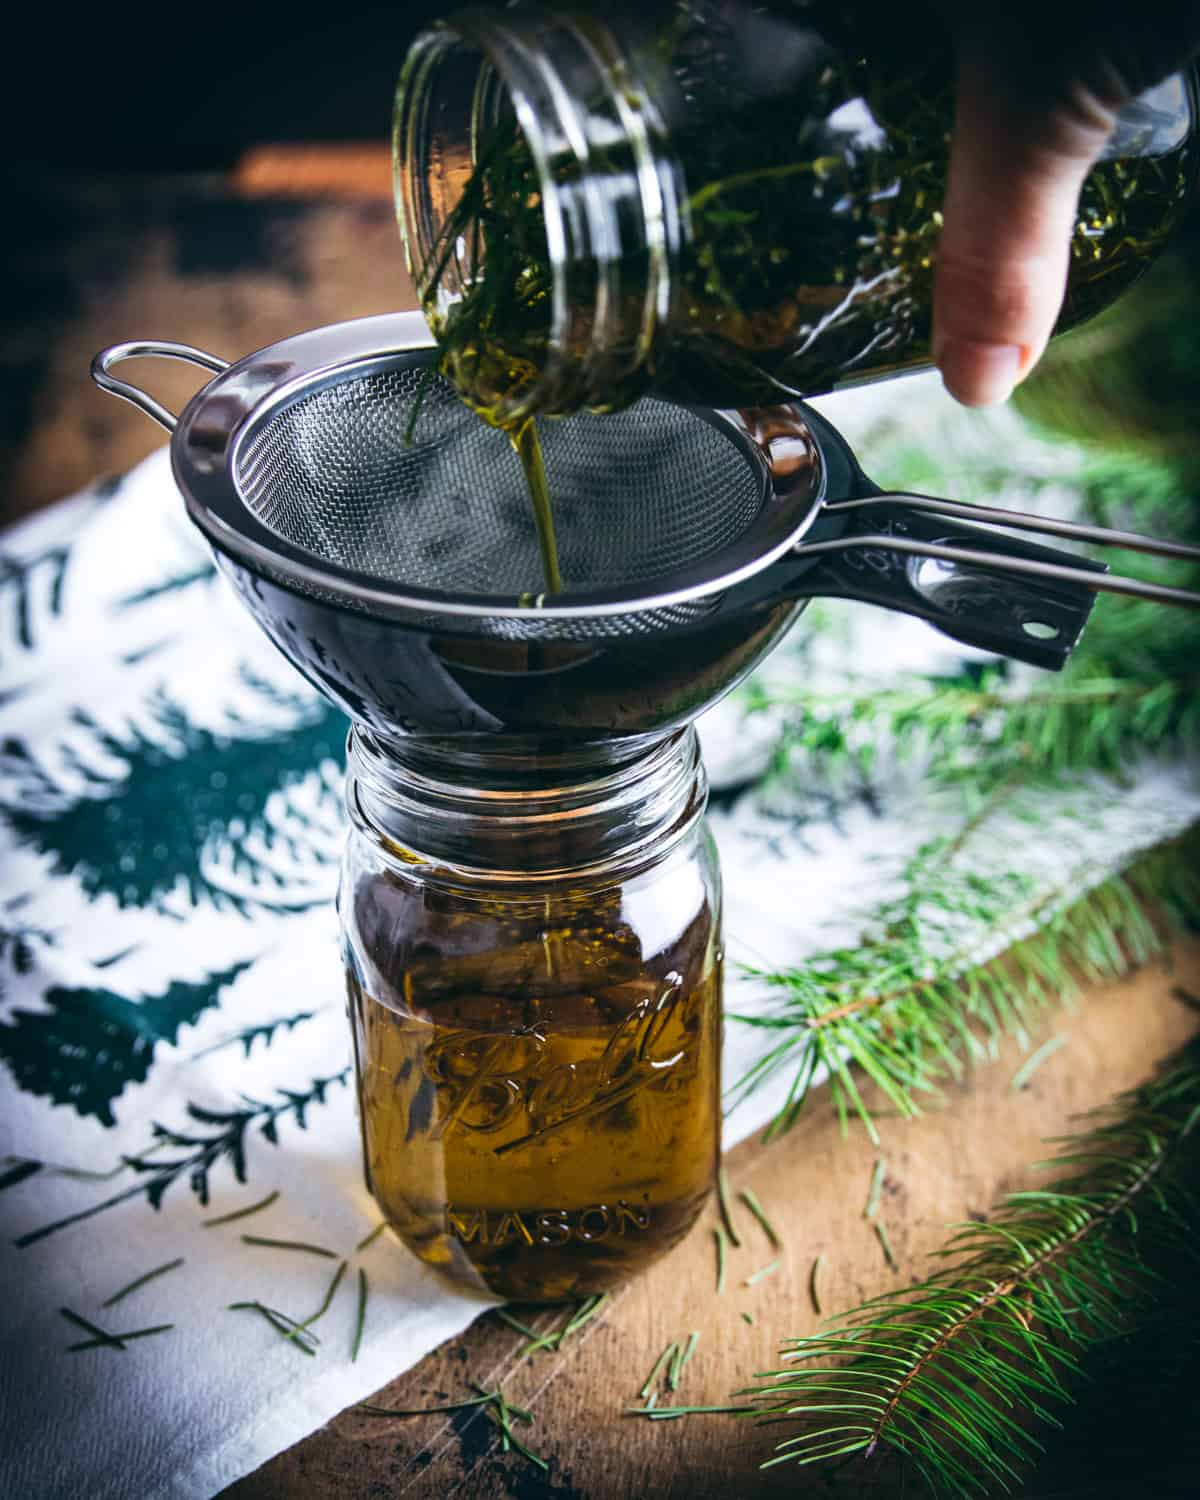 pouring the conifer infused oil through a strainer